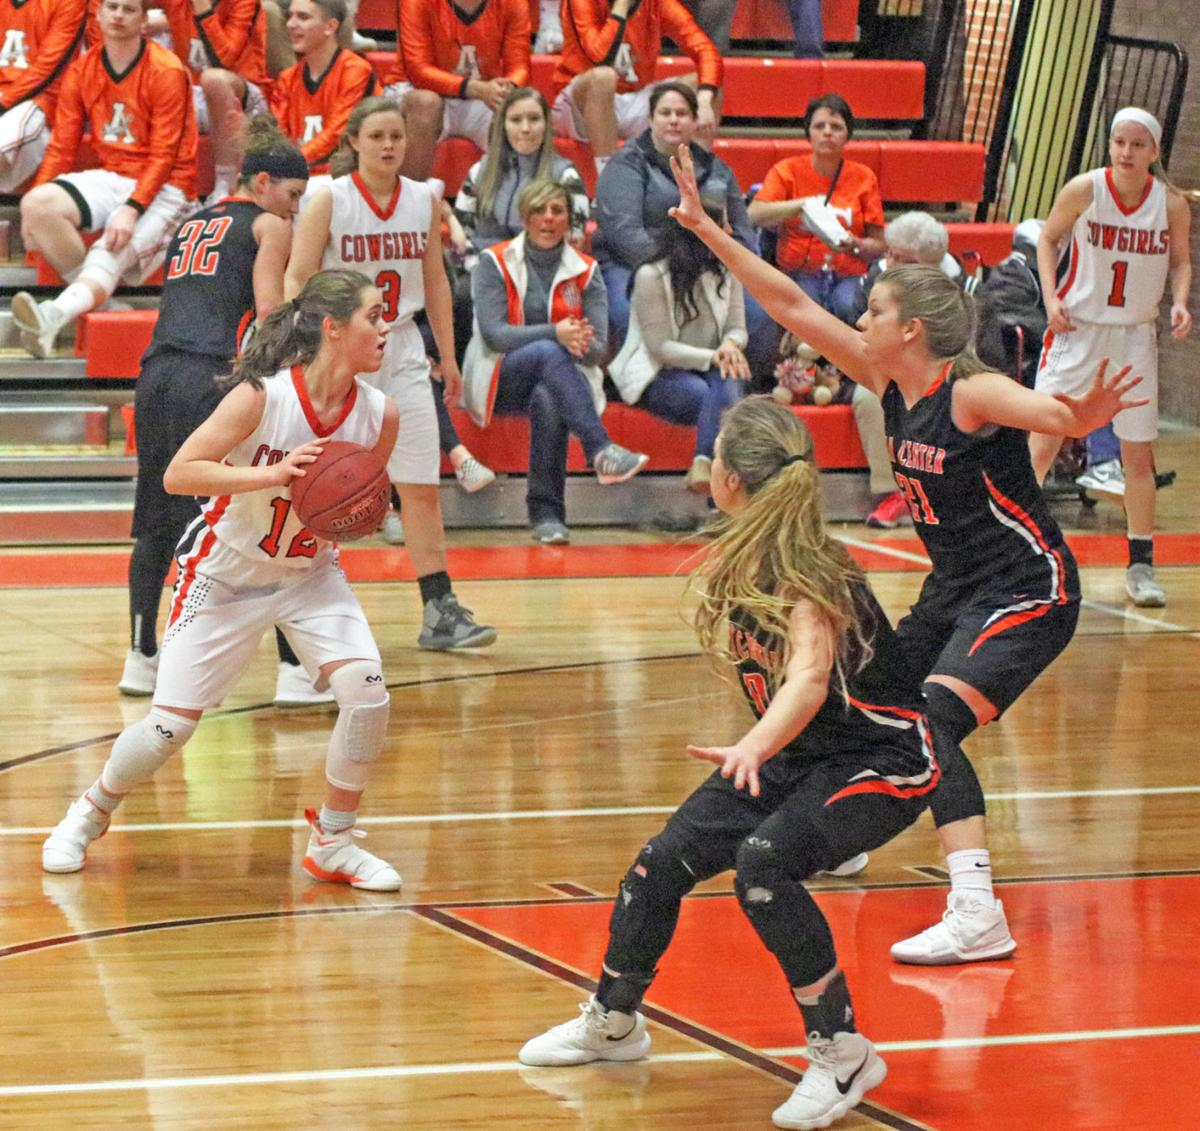 Rc Willey Sports: Cowboys Win Fourth League Game In A Row But The Lady